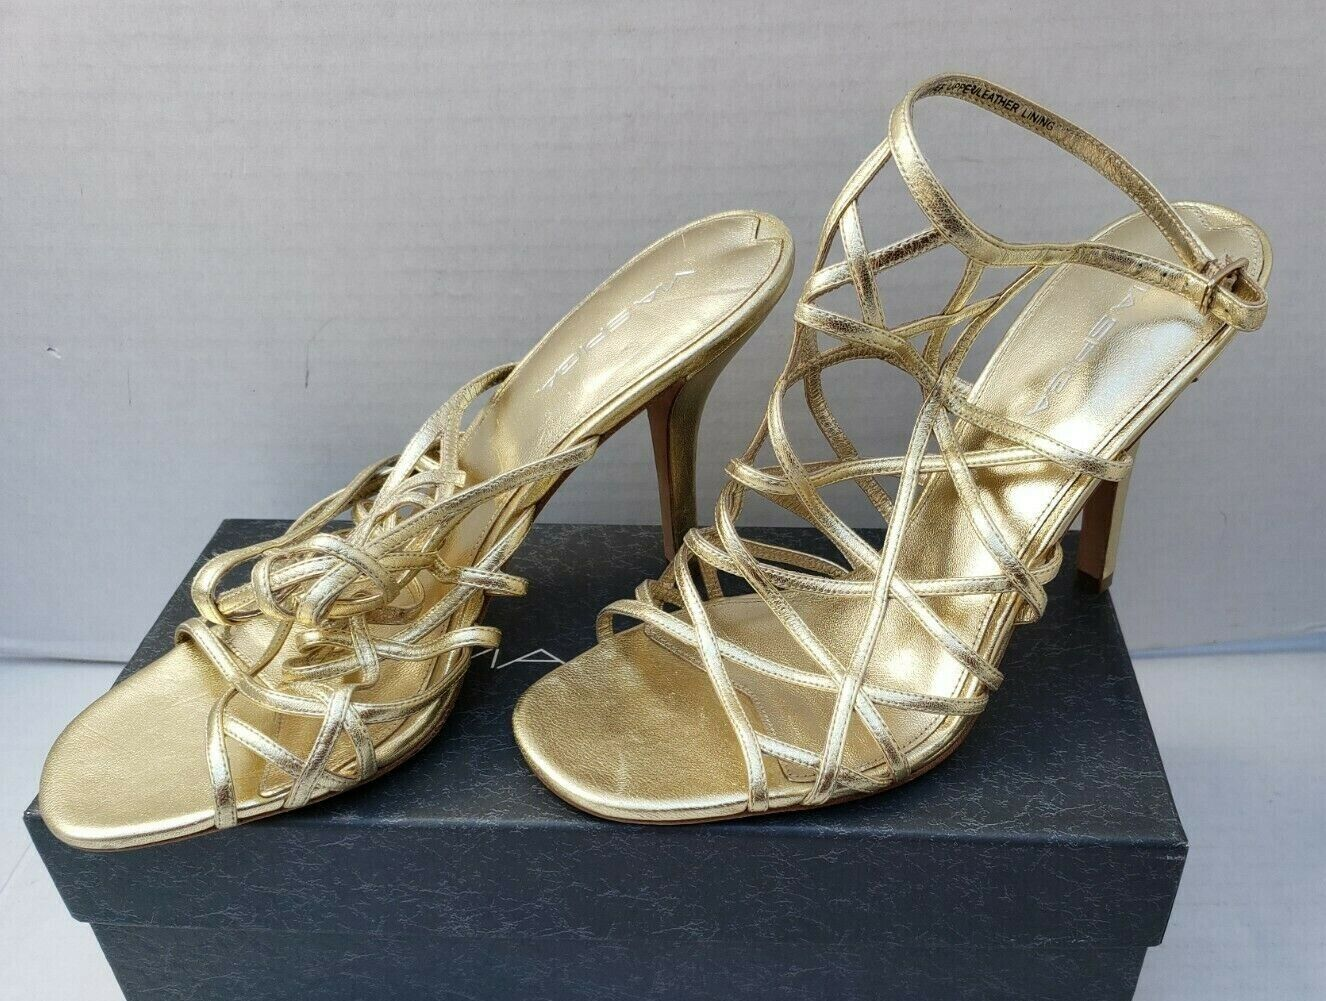 Via Spiga Sandals gold Metallic High Stiletto Heel Leather 9.5 NEW   295